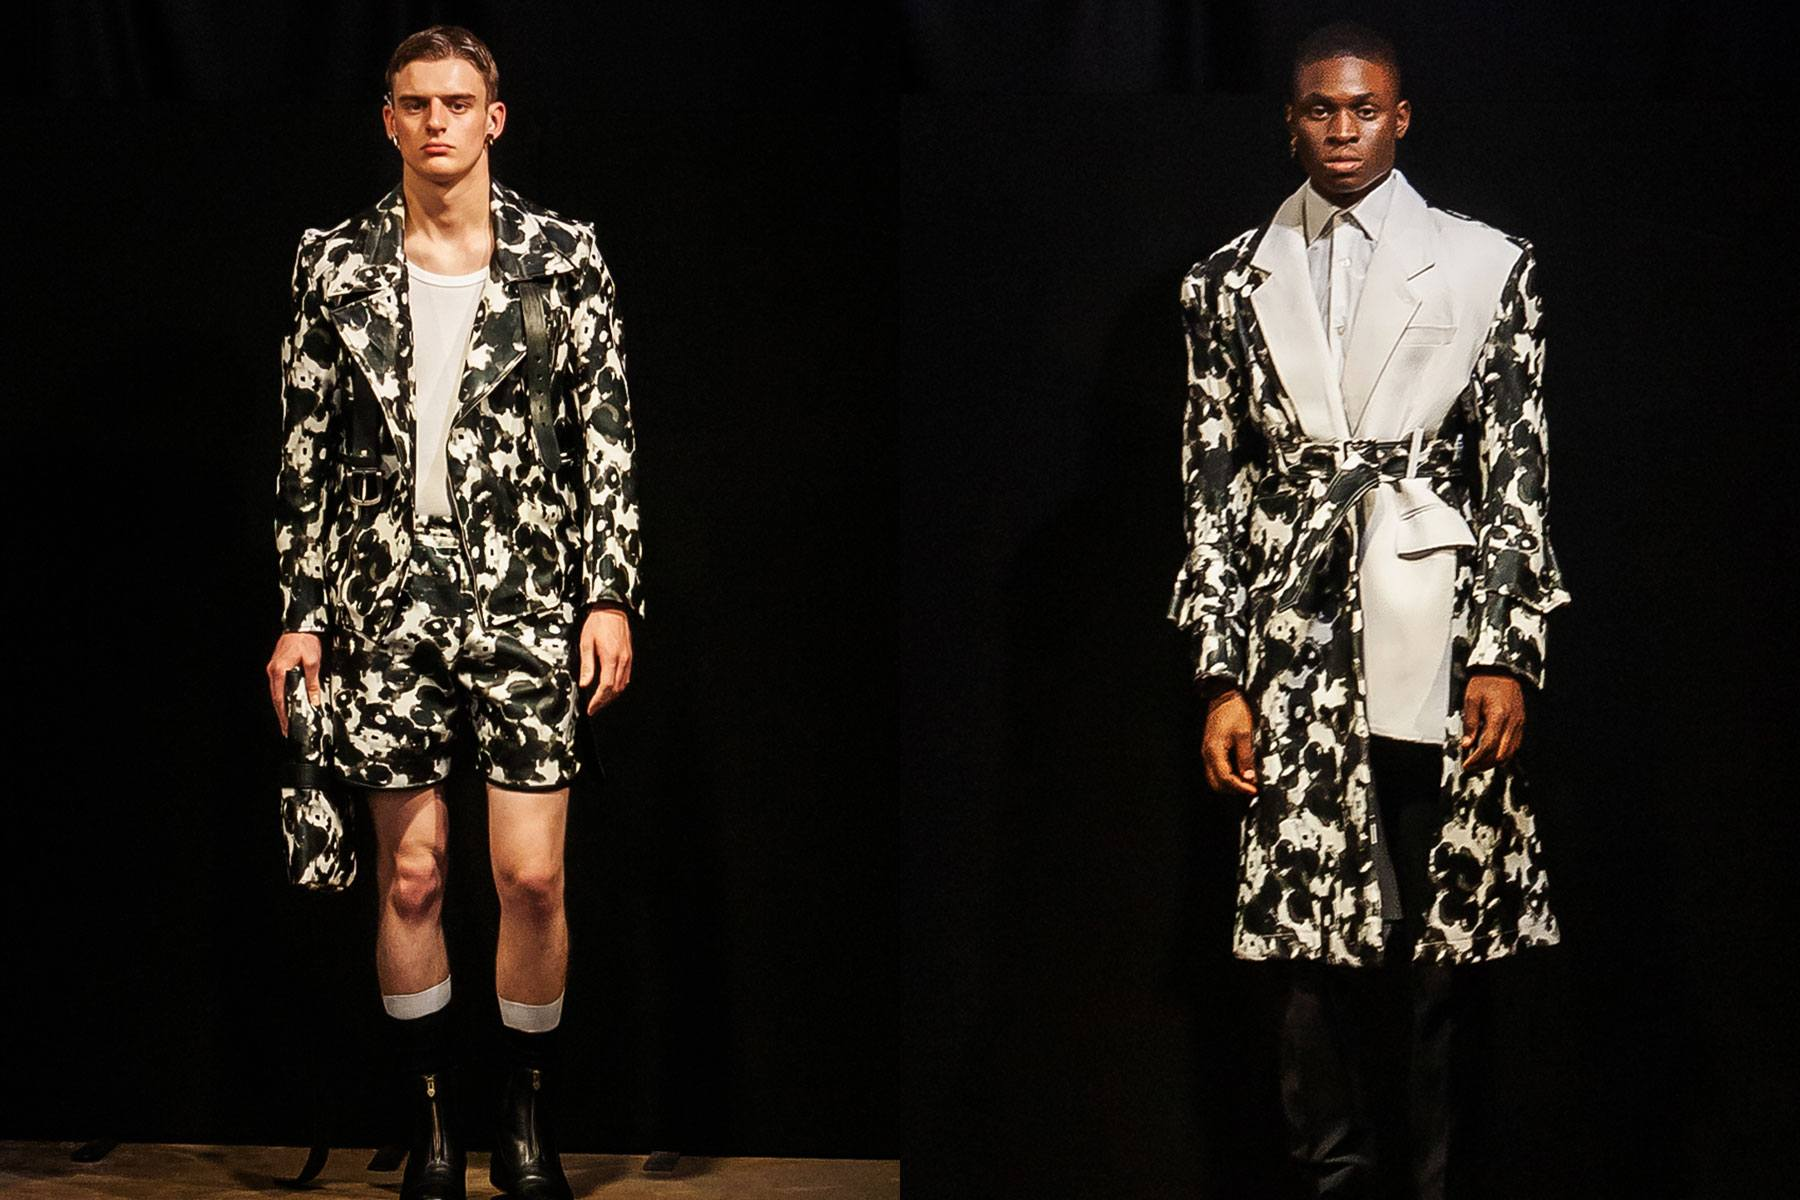 Tokyo James Spring/Summer 2020 menswear show at London Fashion Week Men. Ponyboy magazine.